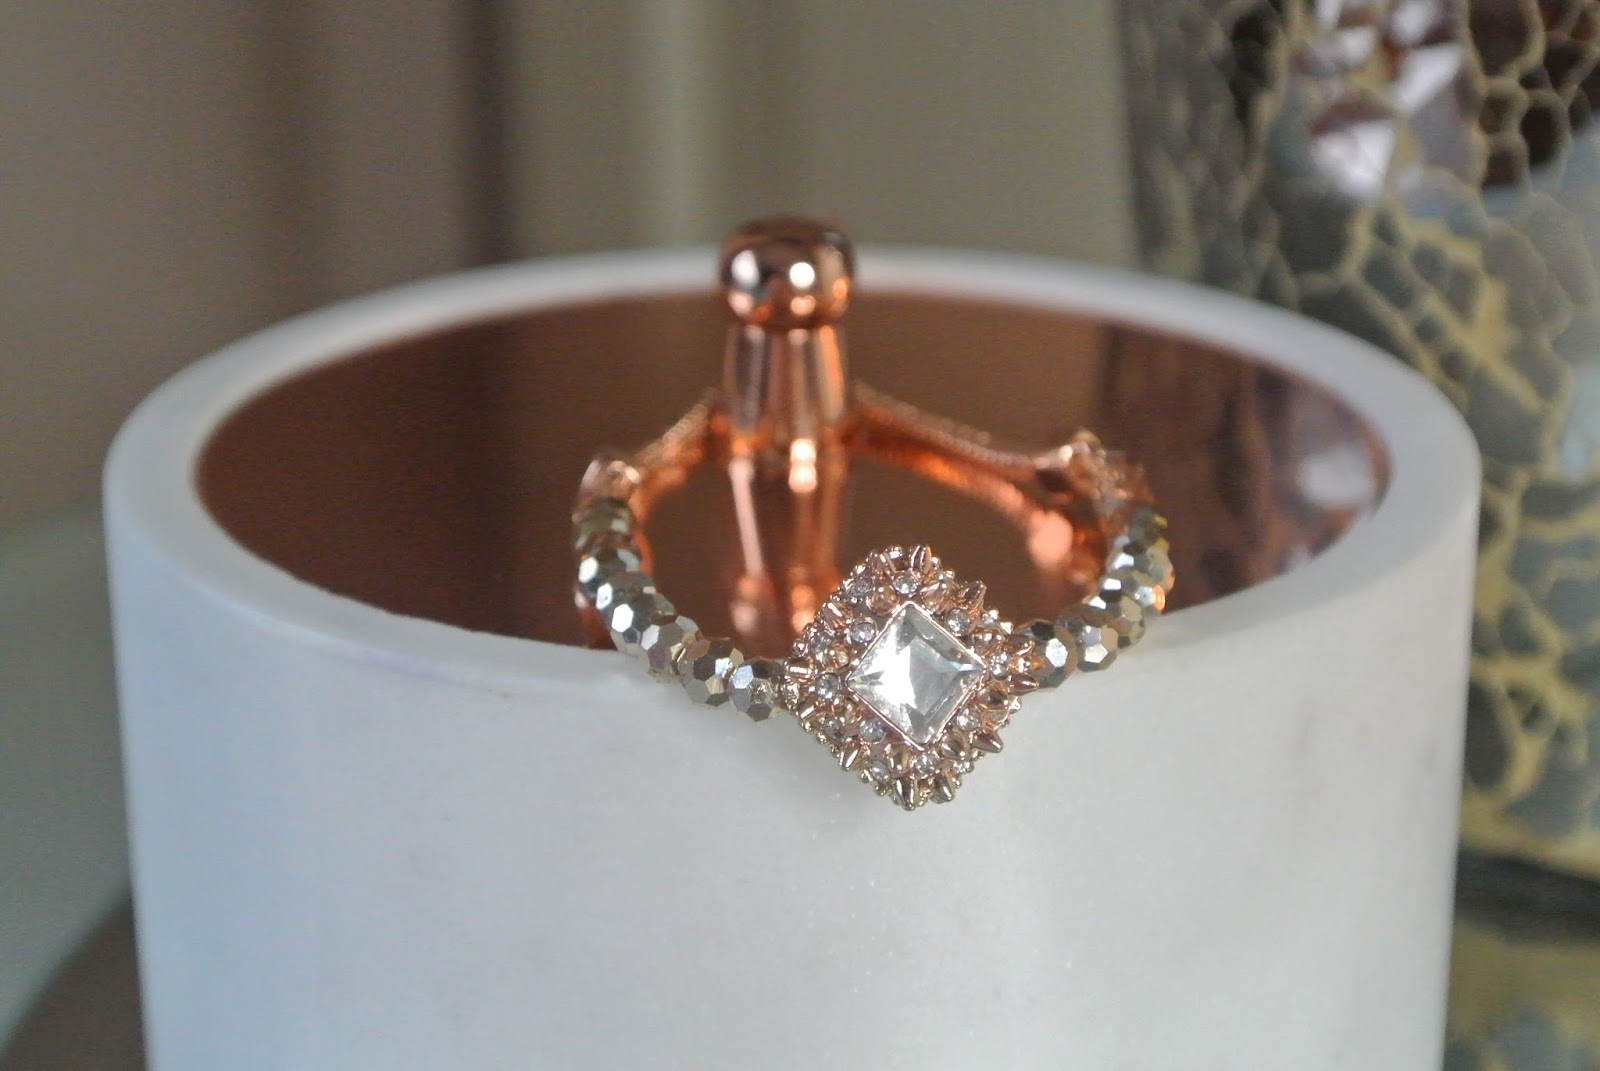 f80873ea9 I didn't have any rose gold bracelets, aside from one very fine one, that I  could pair up with other items. When I spotted the rose gold tone bracelet,  ...